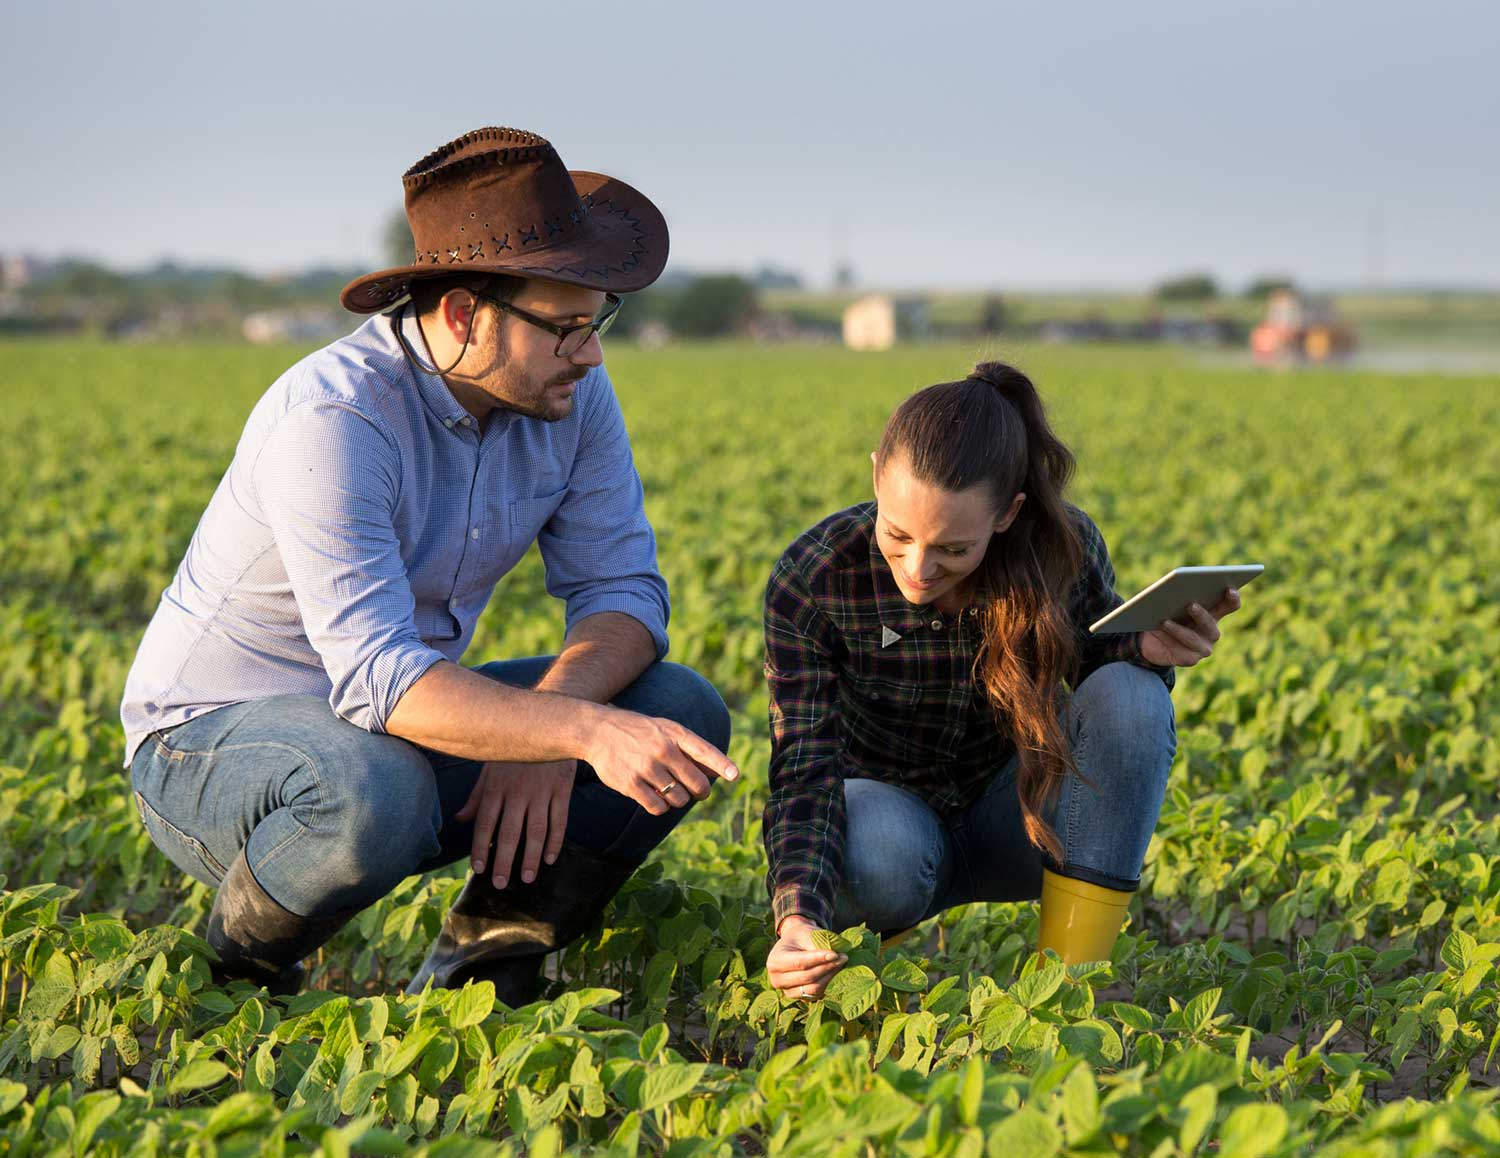 Man and woman examining plants in a field connect innovate grow